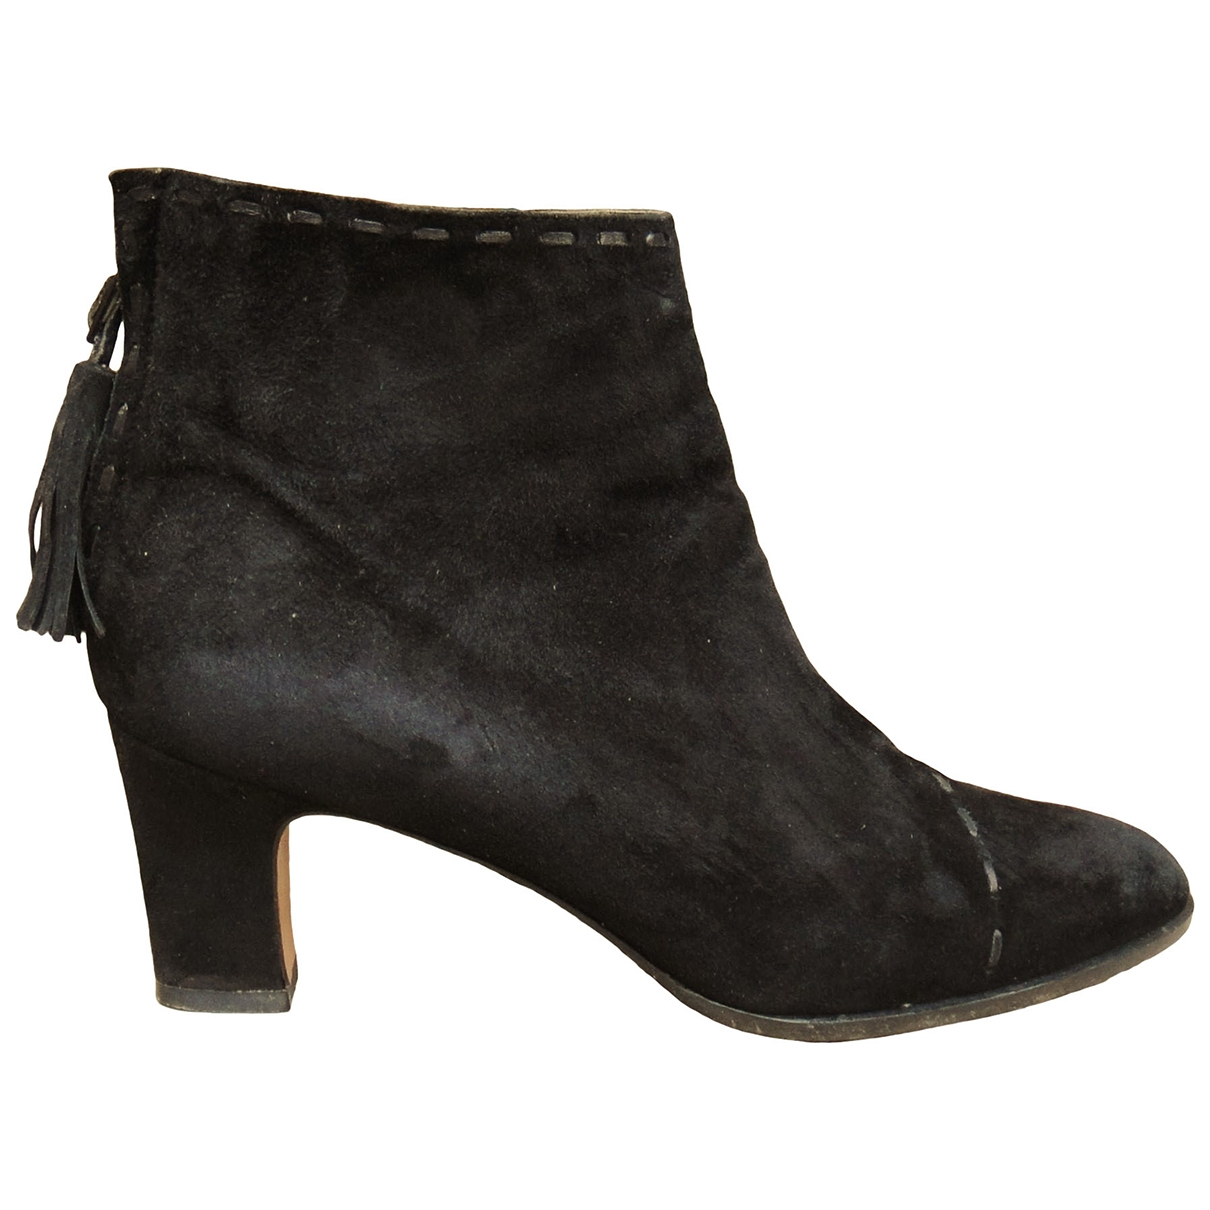 Gucci \N Black Suede Ankle boots for Women 6.5 US